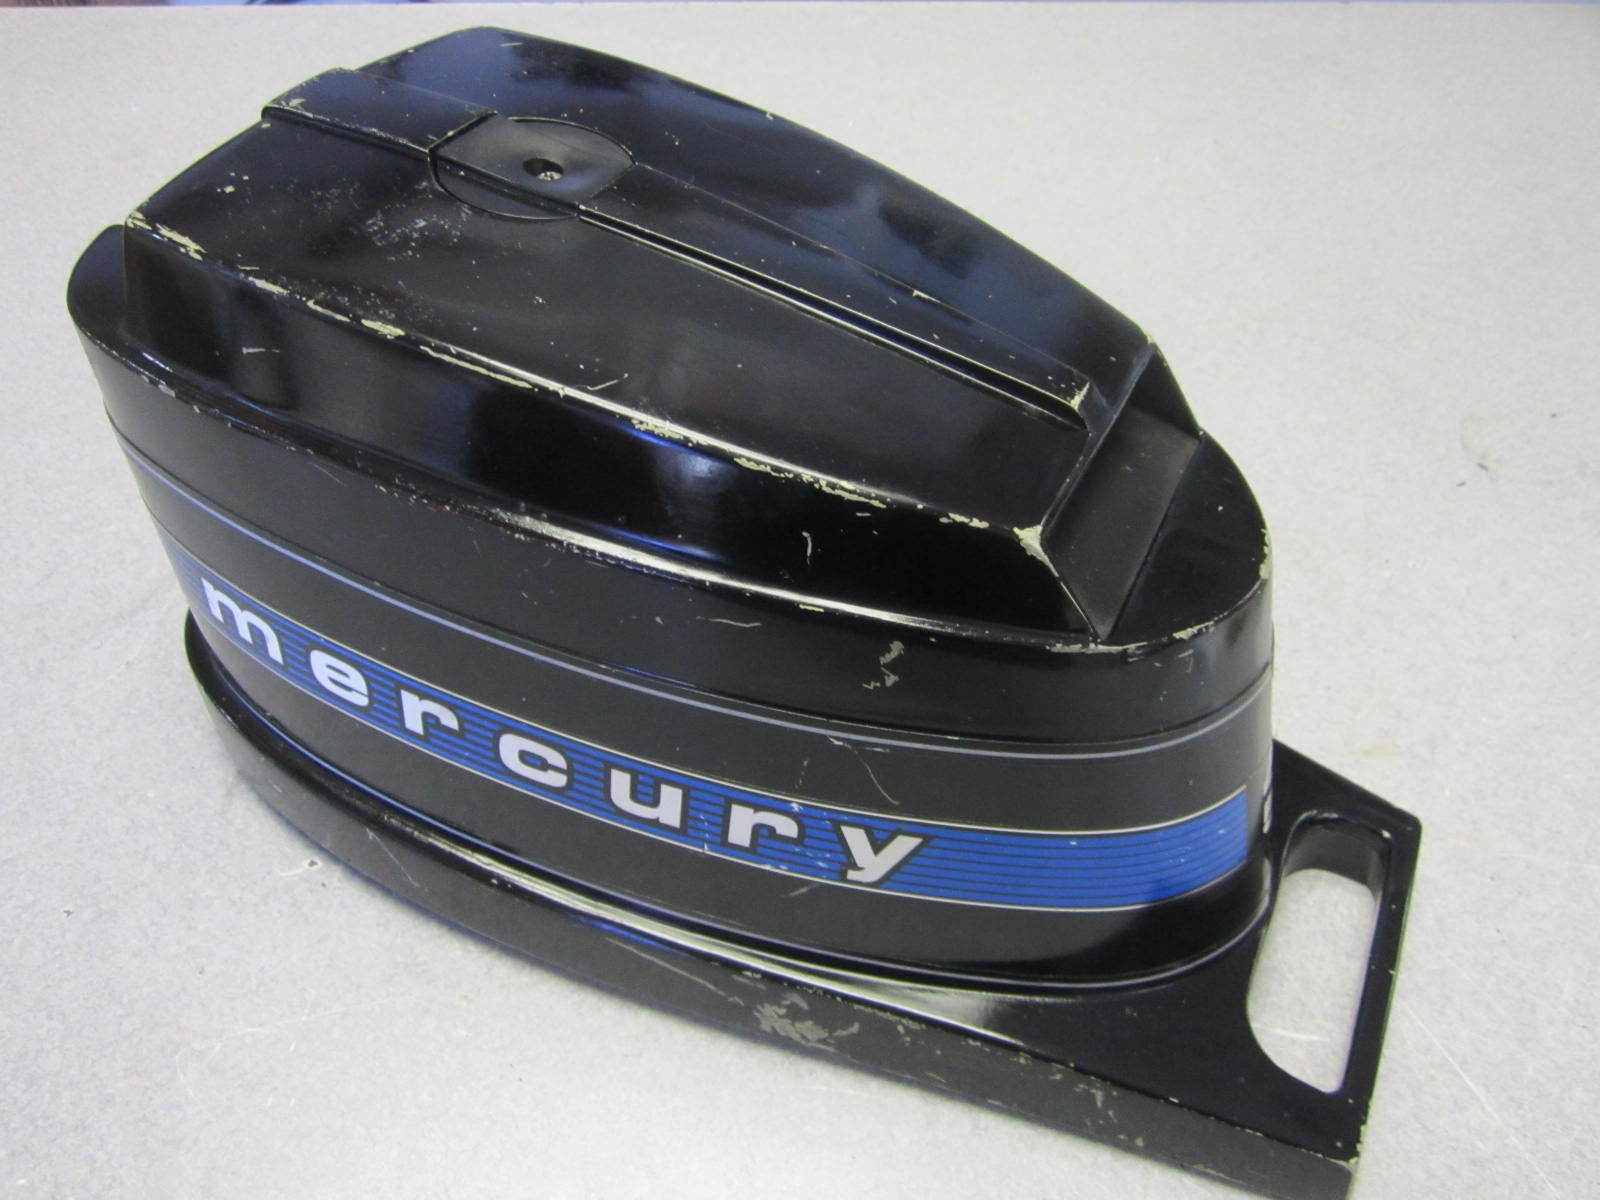 7668a 2 mercury 4 5 hp outboard top motor cover cowl for Mercury outboard motor cowling